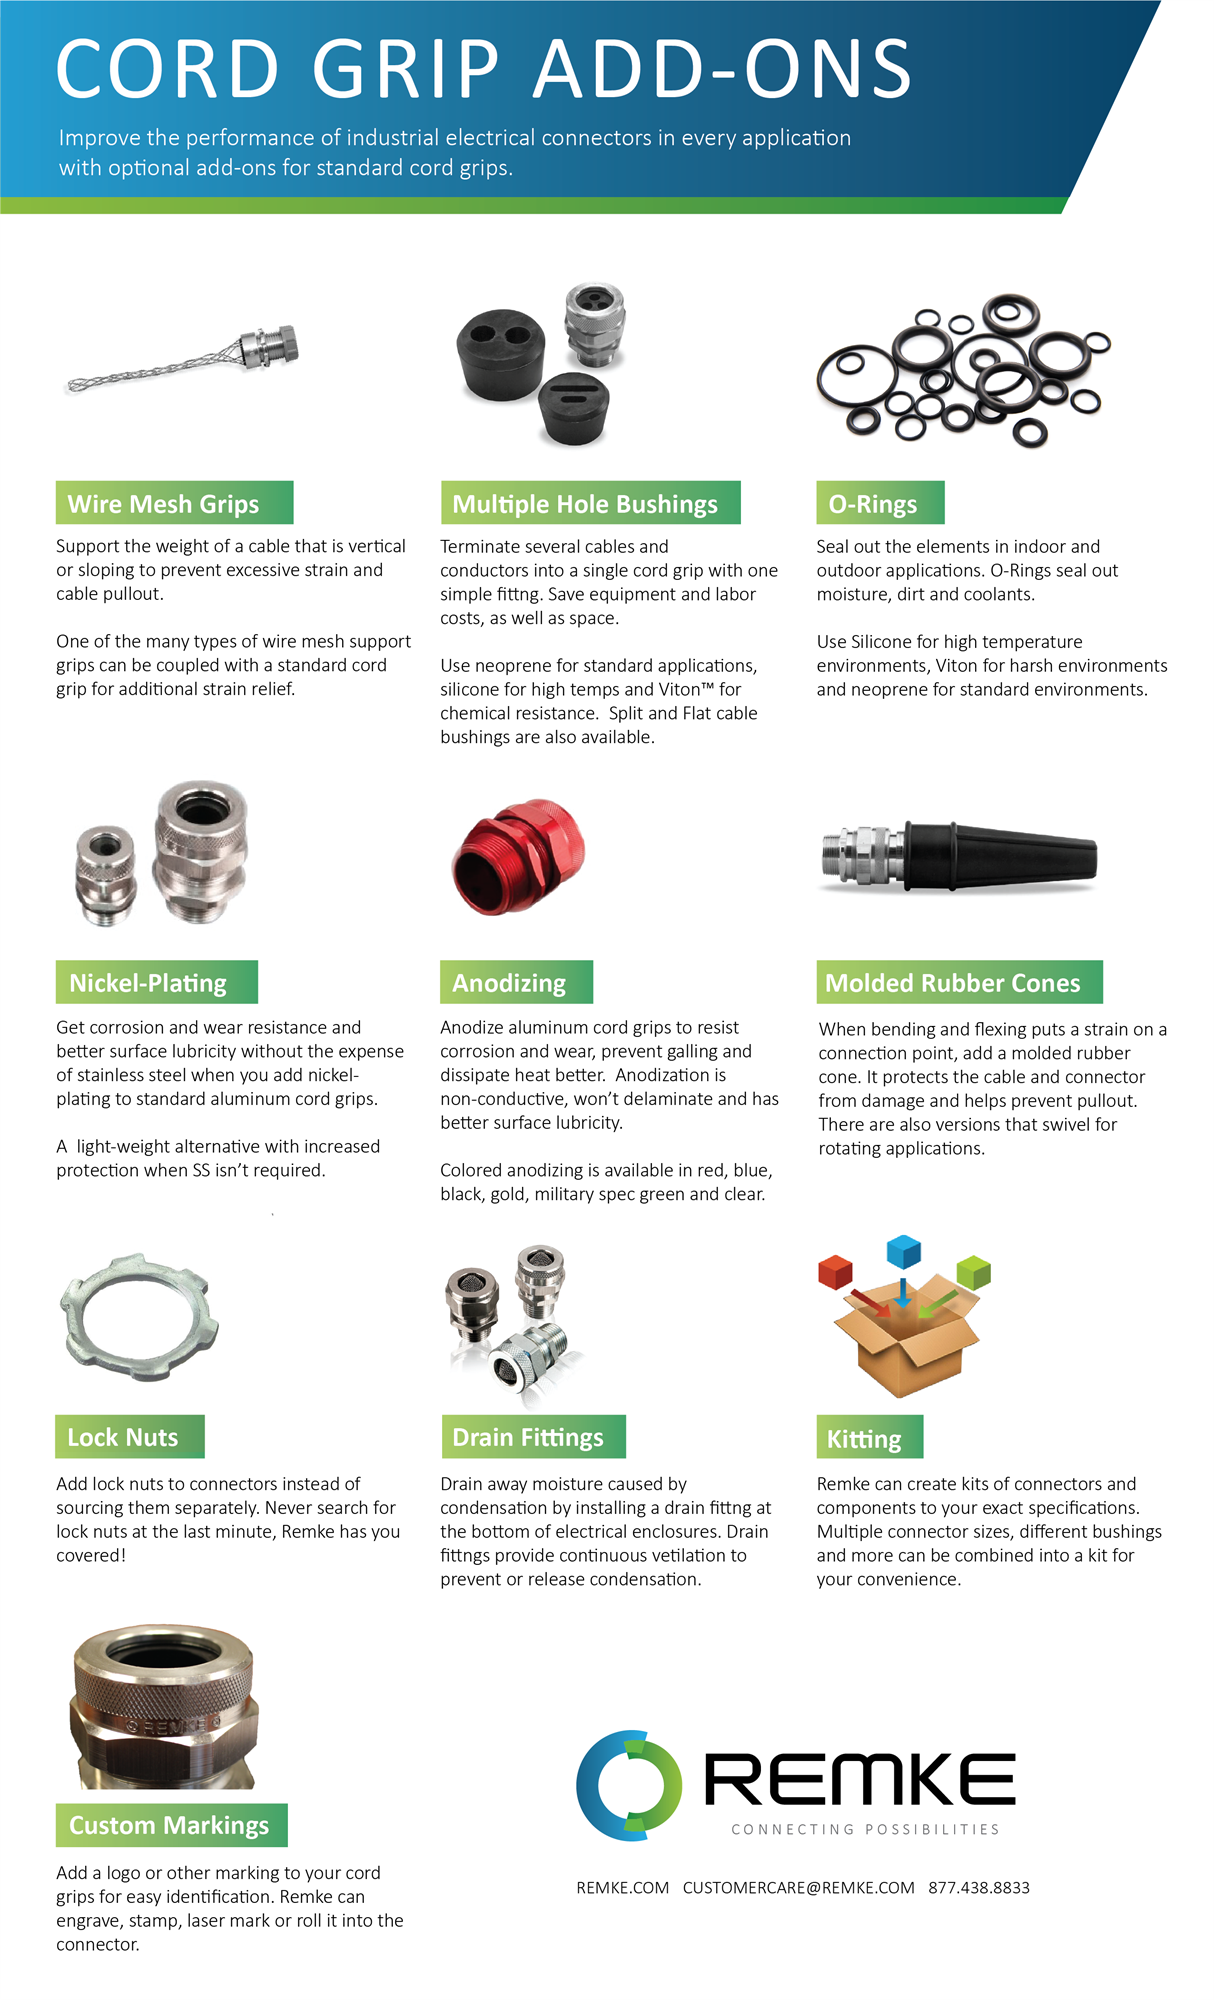 Add-on options for cord grips from Remke, an Infographic